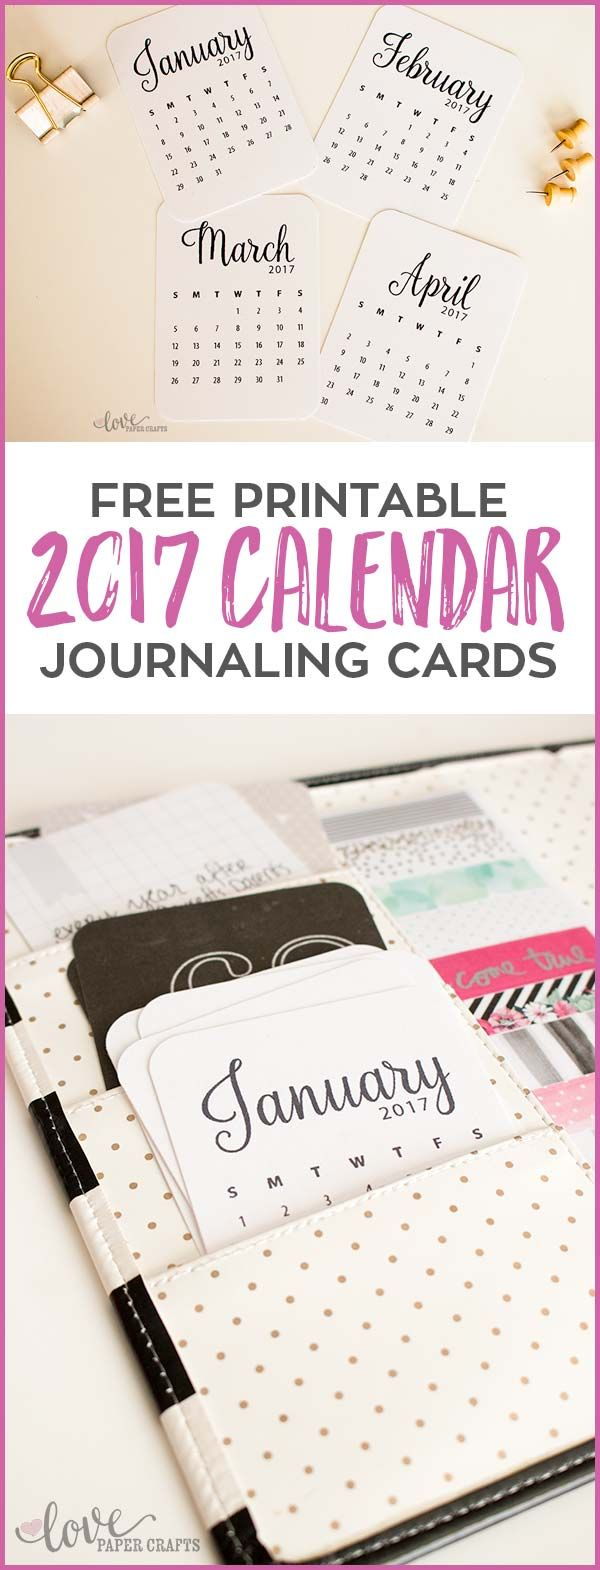 Free Printable 2017 Calendar Journaling Cards. These are cute and can be used in the #planner #projectlife or #scrapbooking   LovePaperCrafts.com